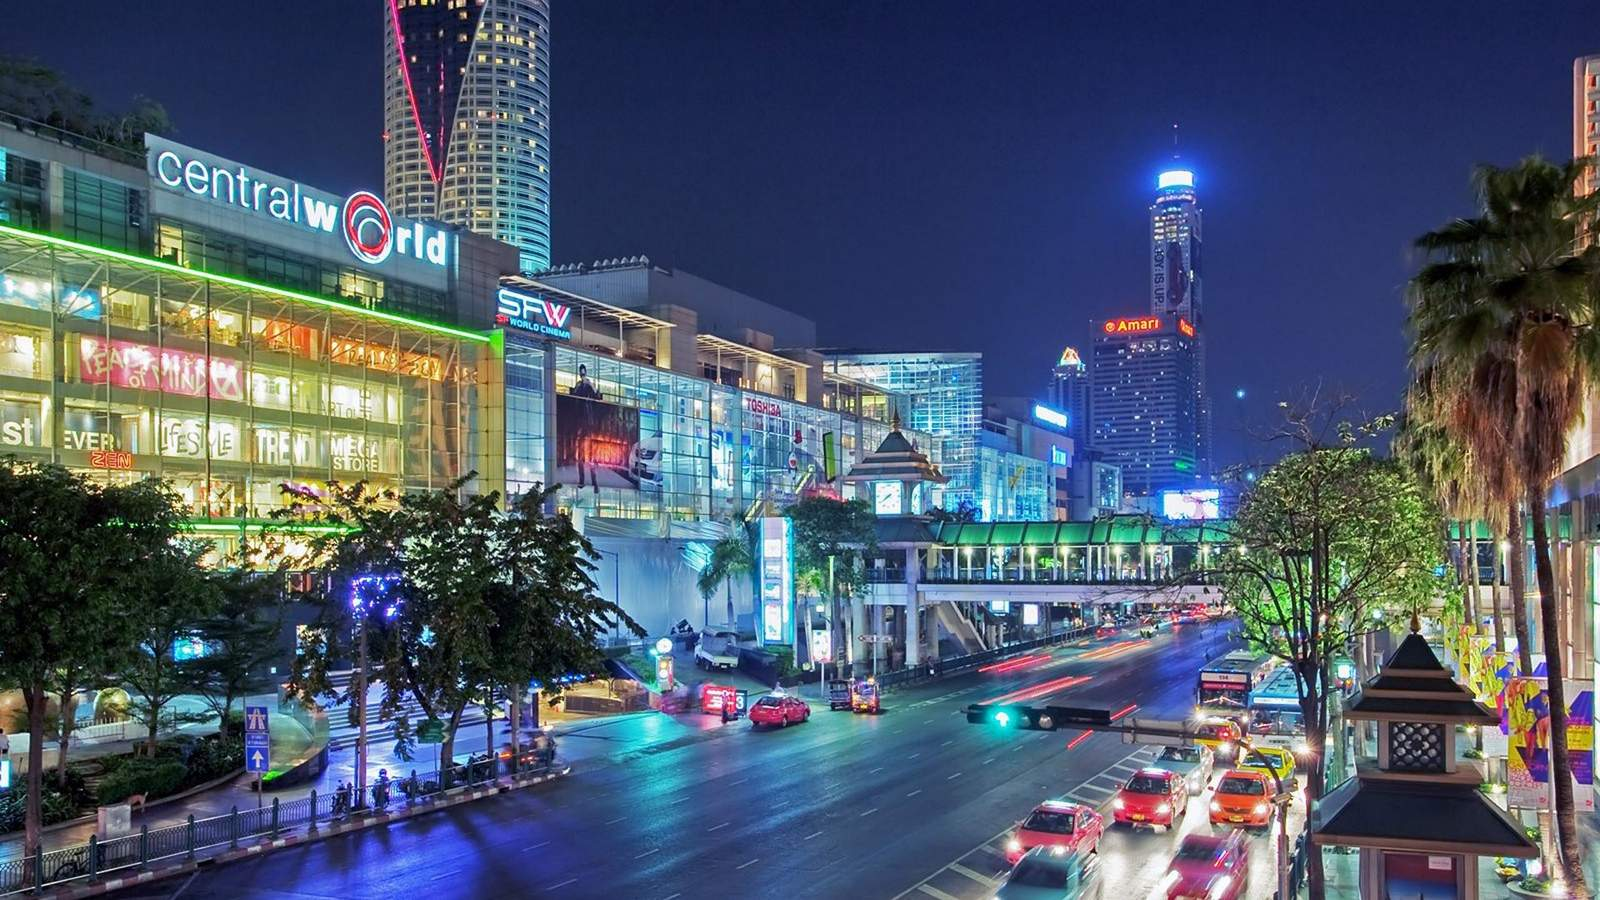 centralworld-the-best-shopping-malls-in-bangkok-23 best shopping malls in bangkok top shopping malls in bangkok bangkok shopping guide